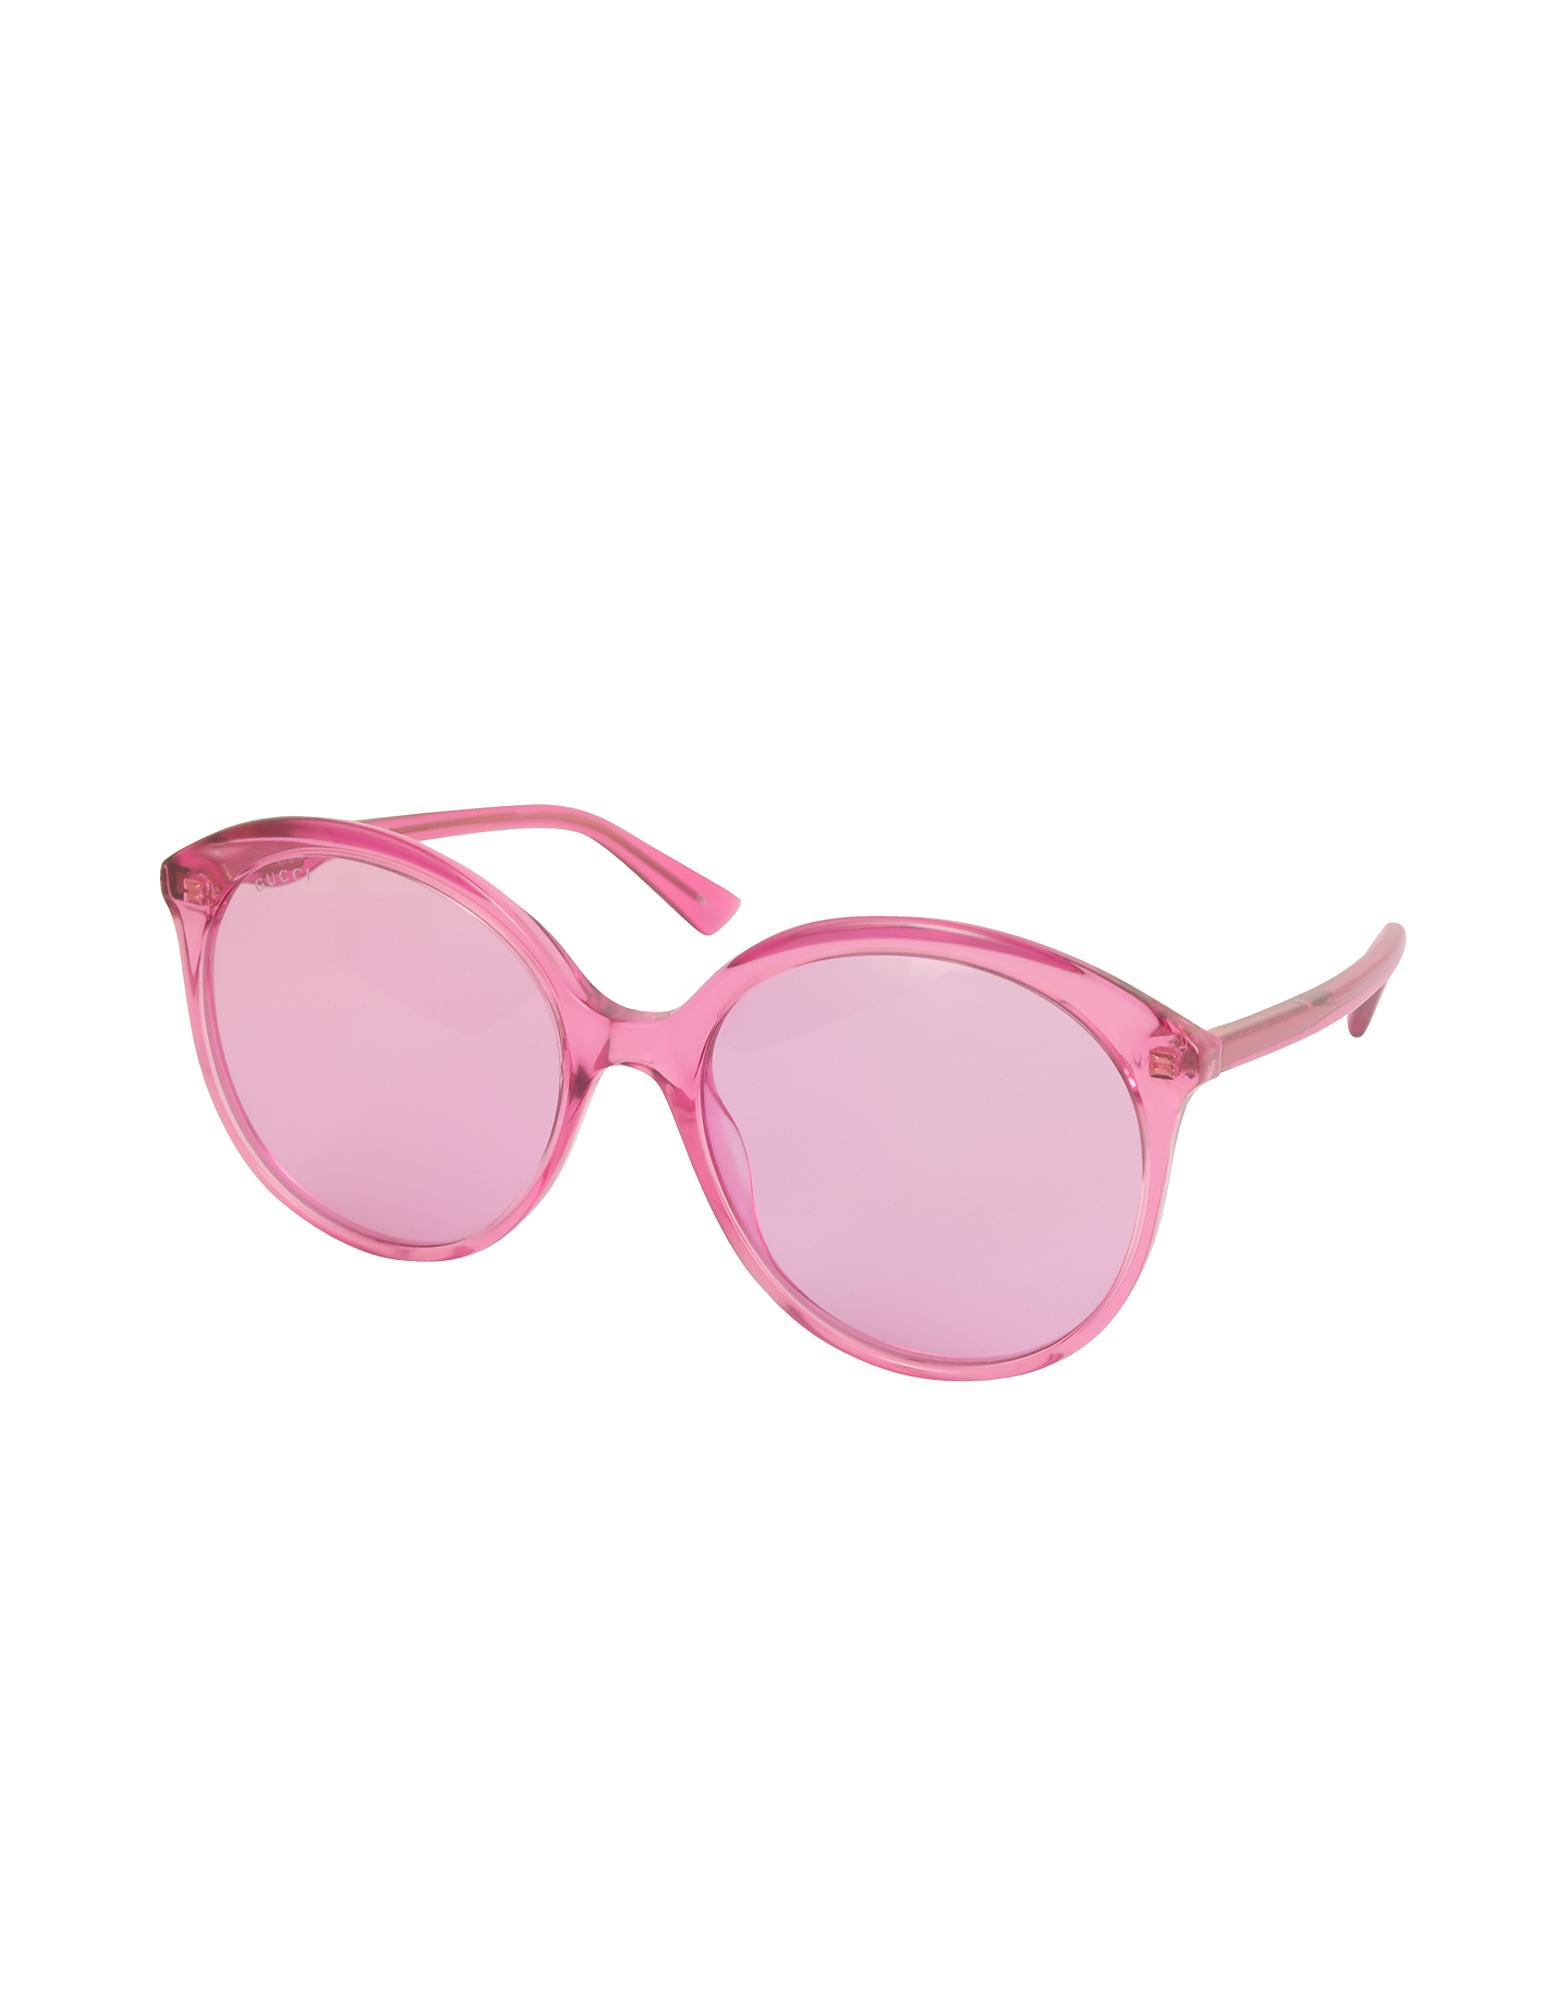 Fuchsia Pink Specialized Fit Round Frame Sunglasses - Pink & Purple Gucci Aa4ULi7j